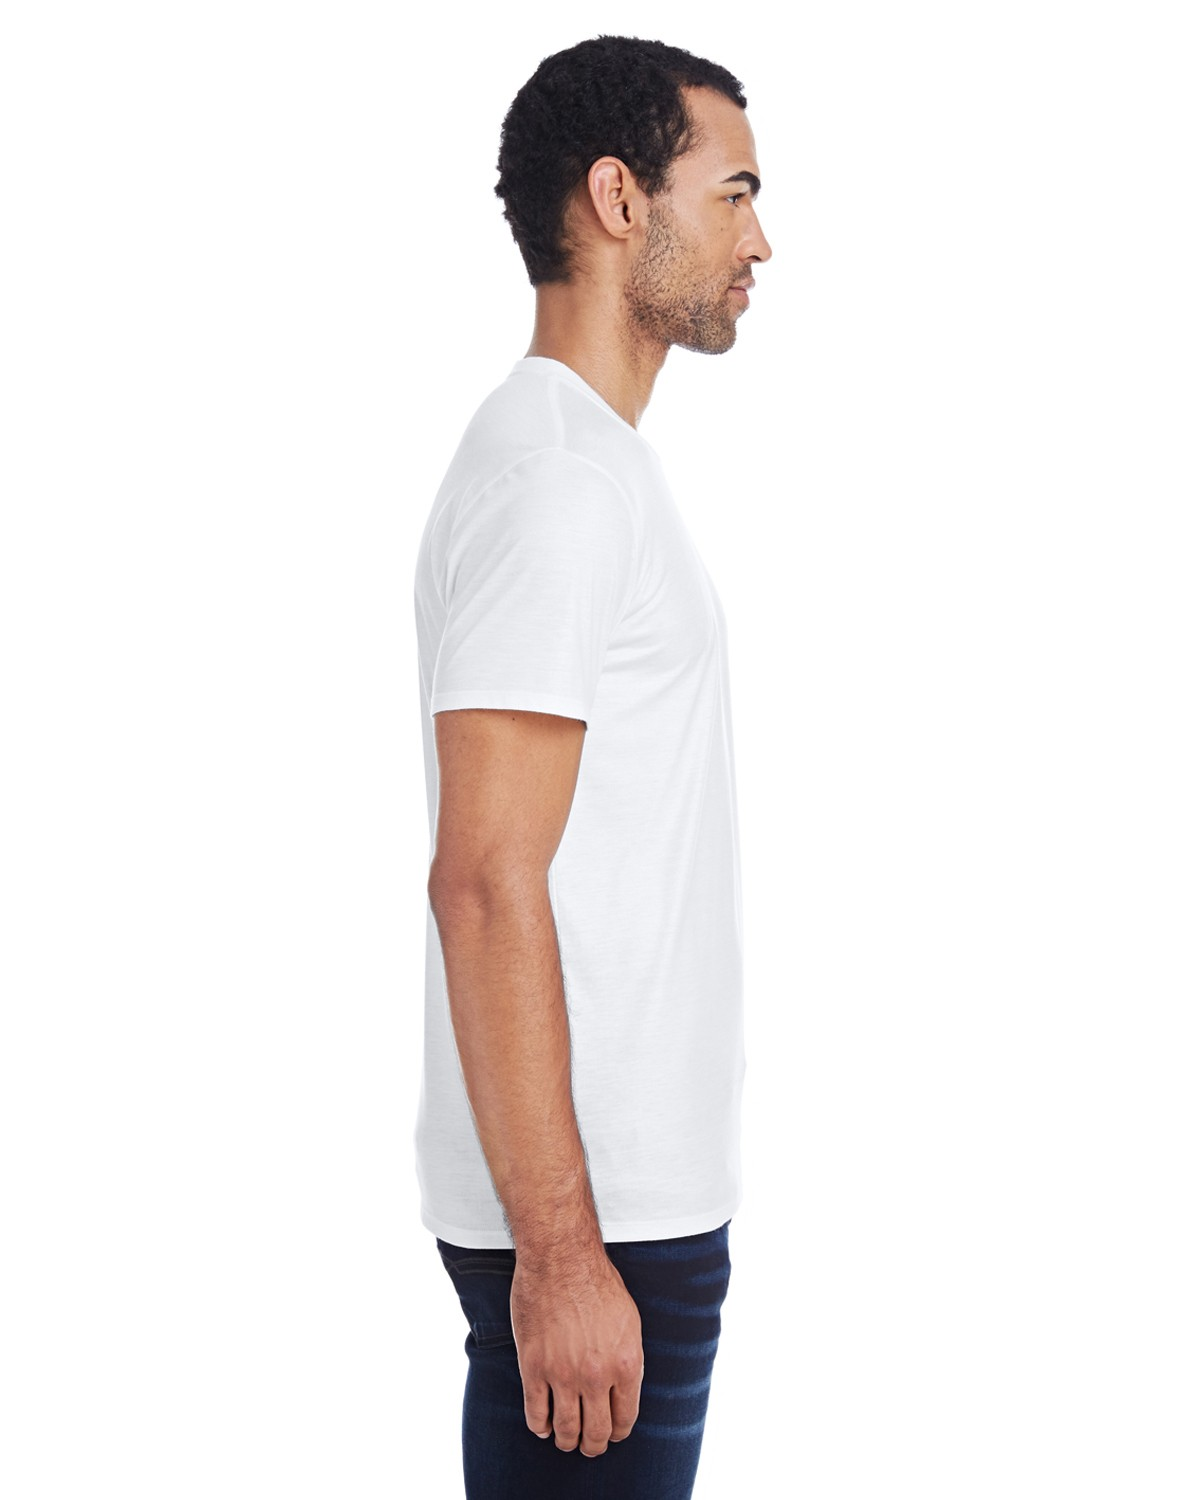 140A Threadfast Apparel LIQUID WHITE